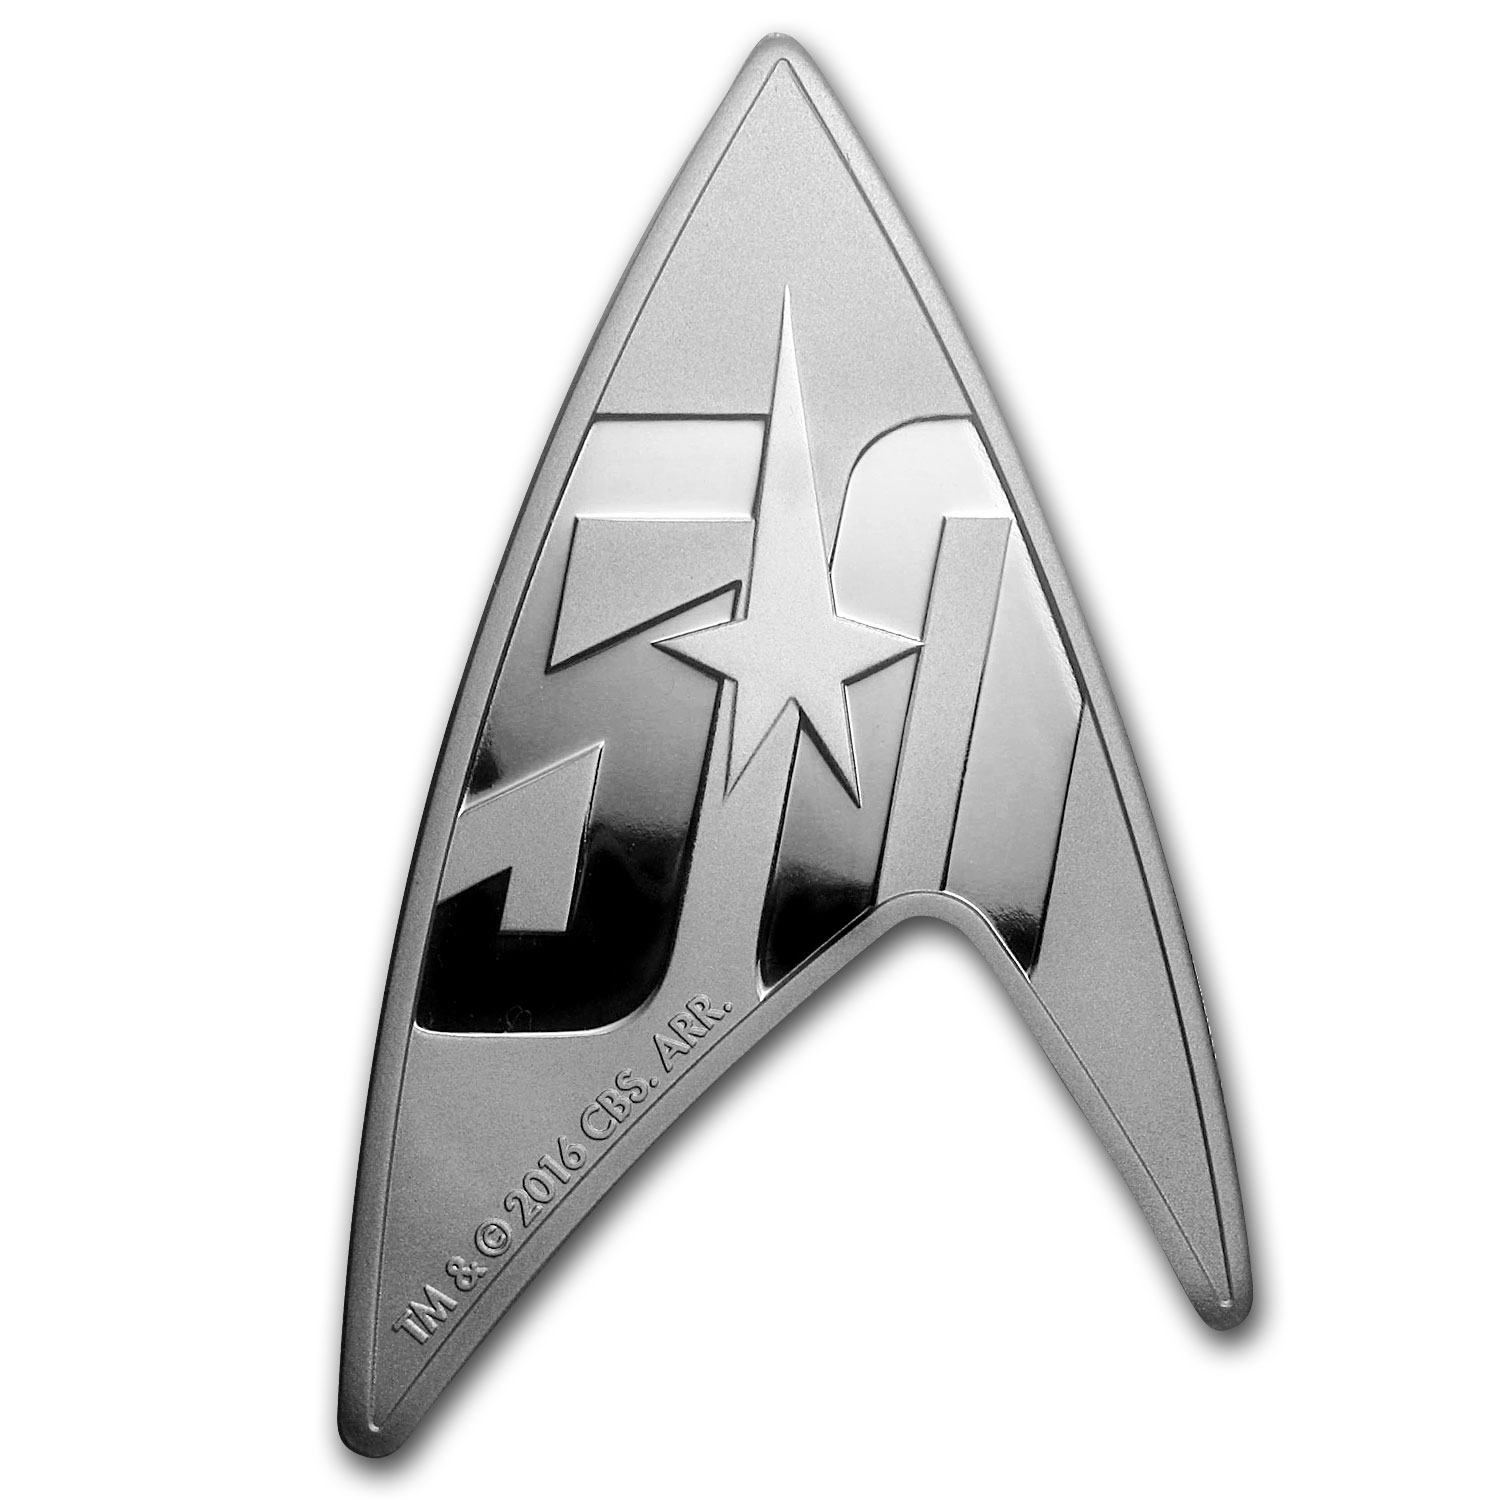 2016 Tuvalu 1 oz Silver Star Trek: Delta Shaped Coin